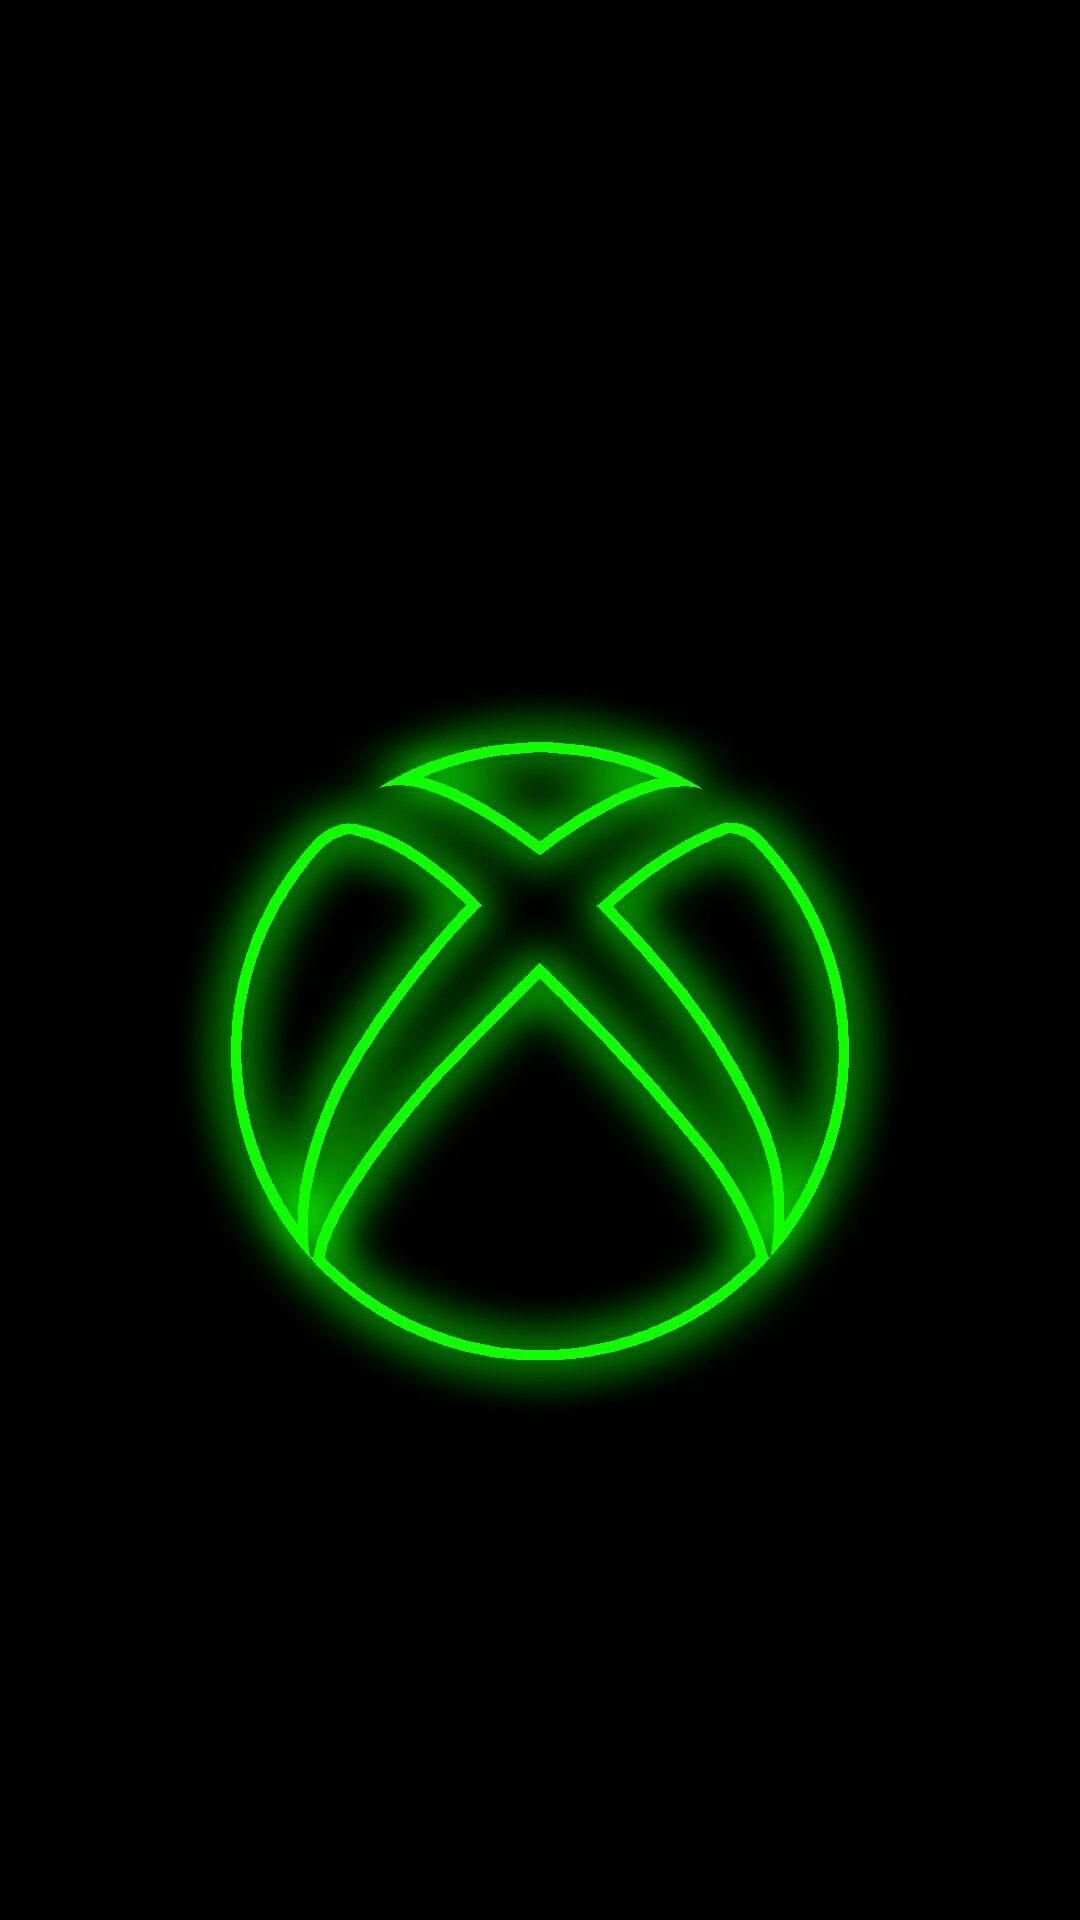 xboxart Xbox, Gaming wallpapers